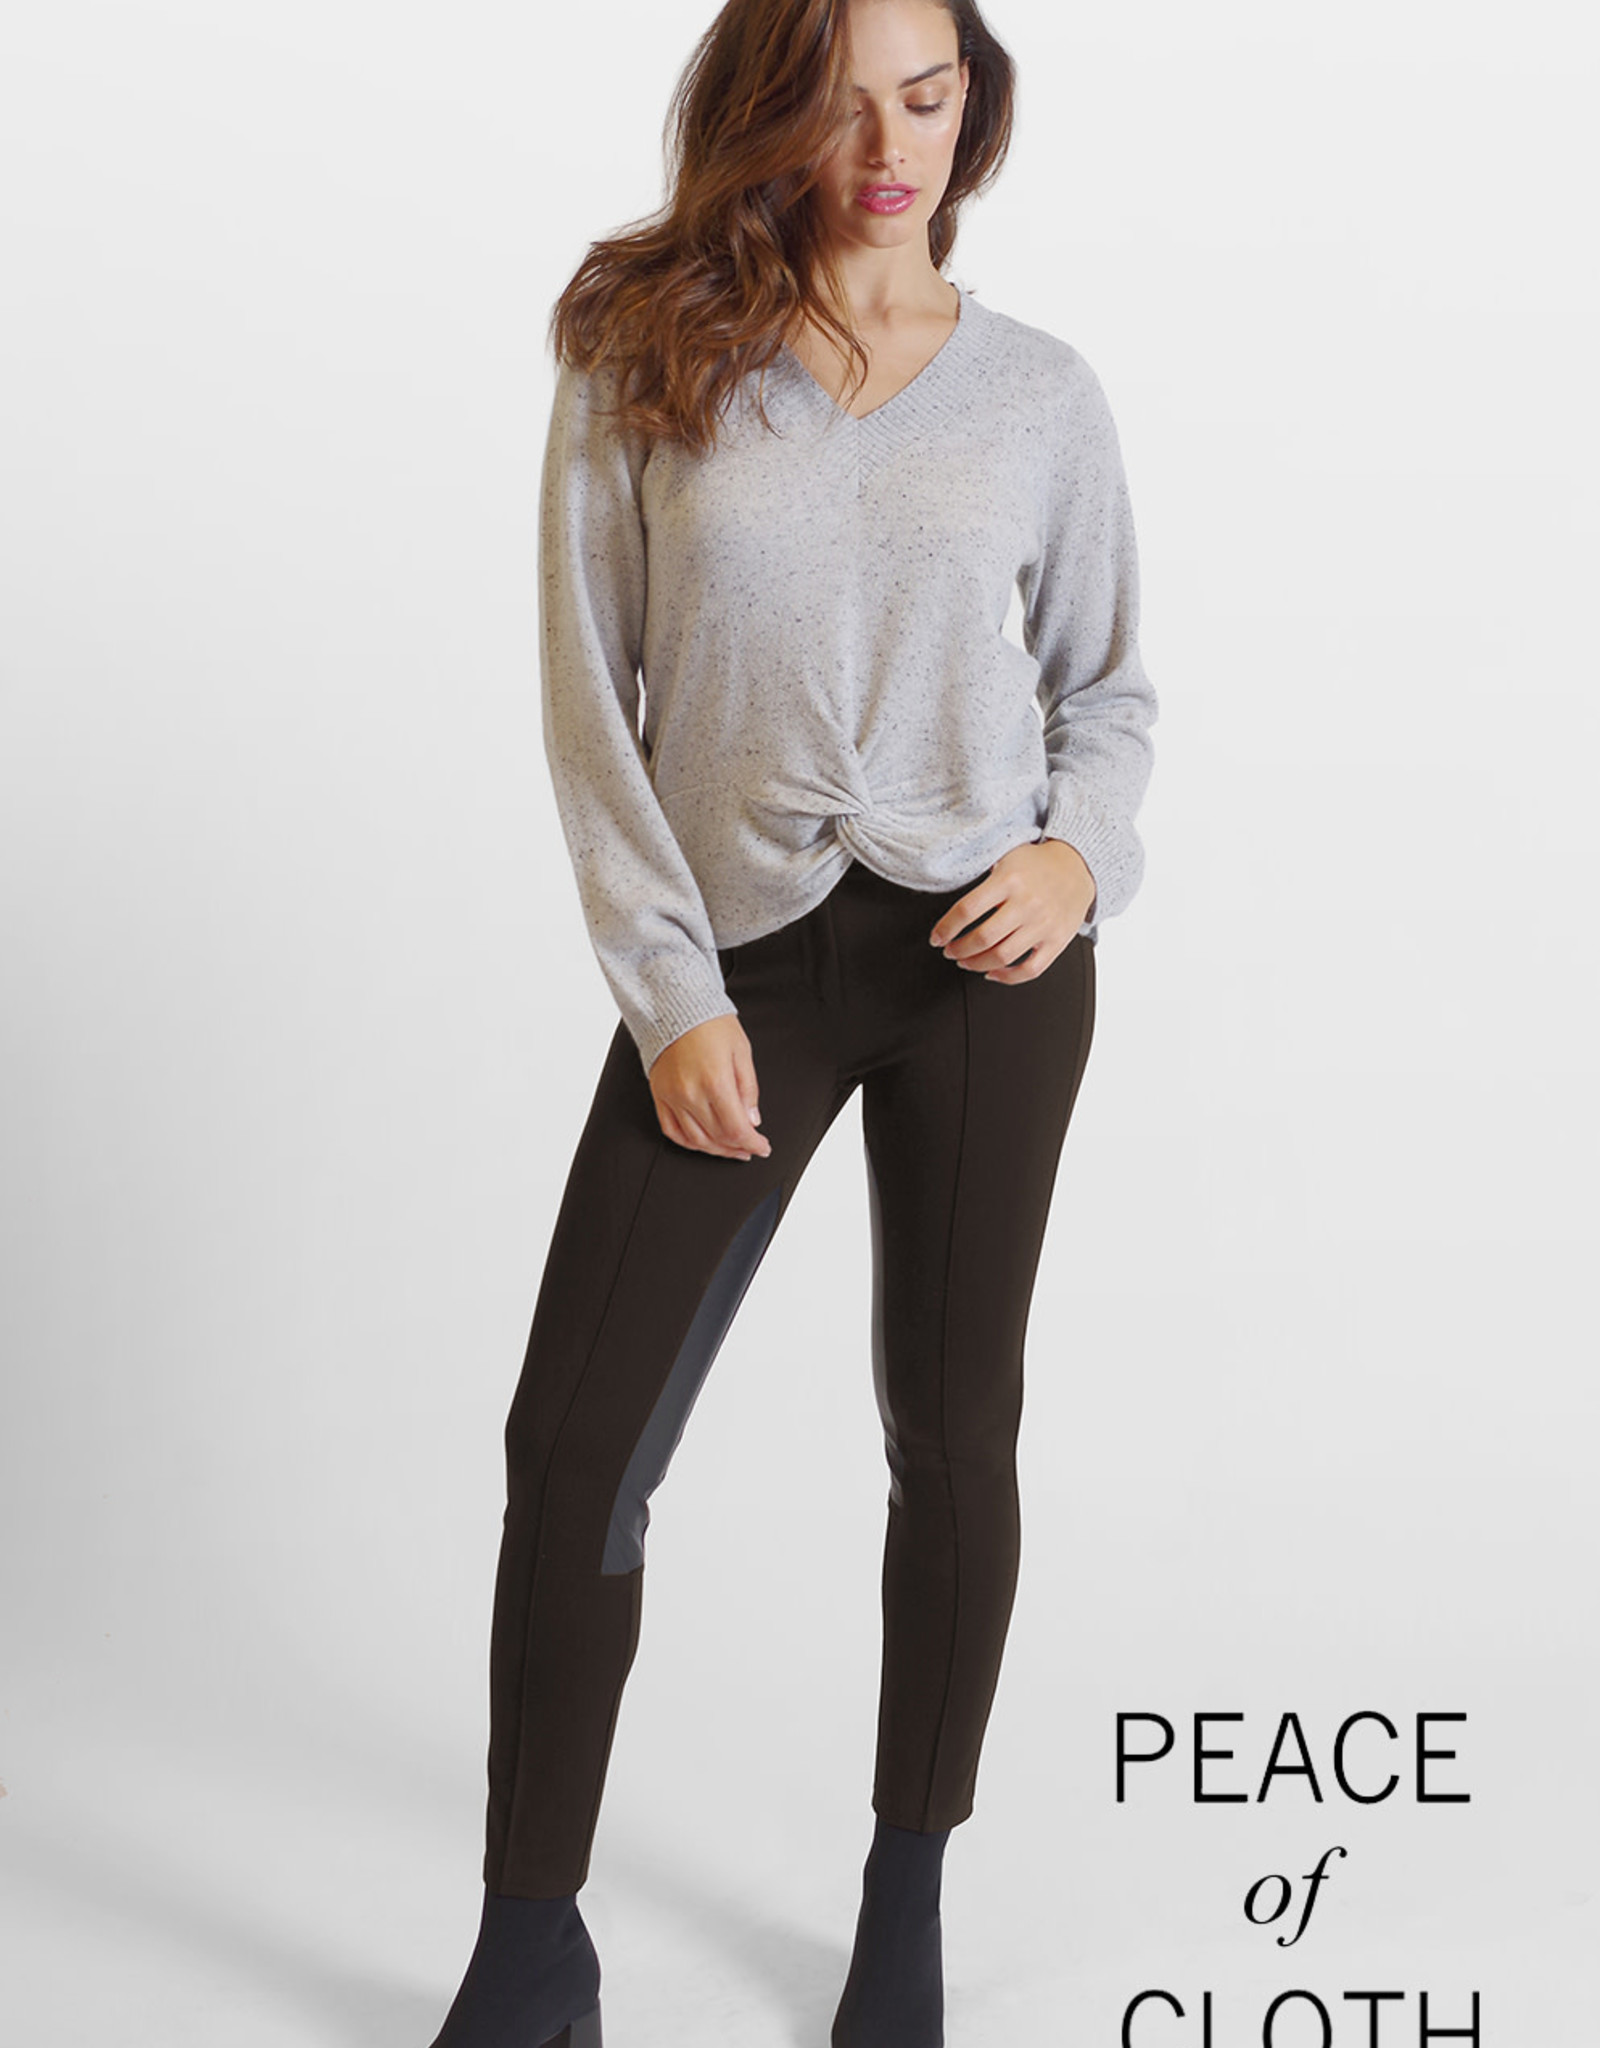 PEACE OF CLOTH - Leather/ Fabric Stretch Pant